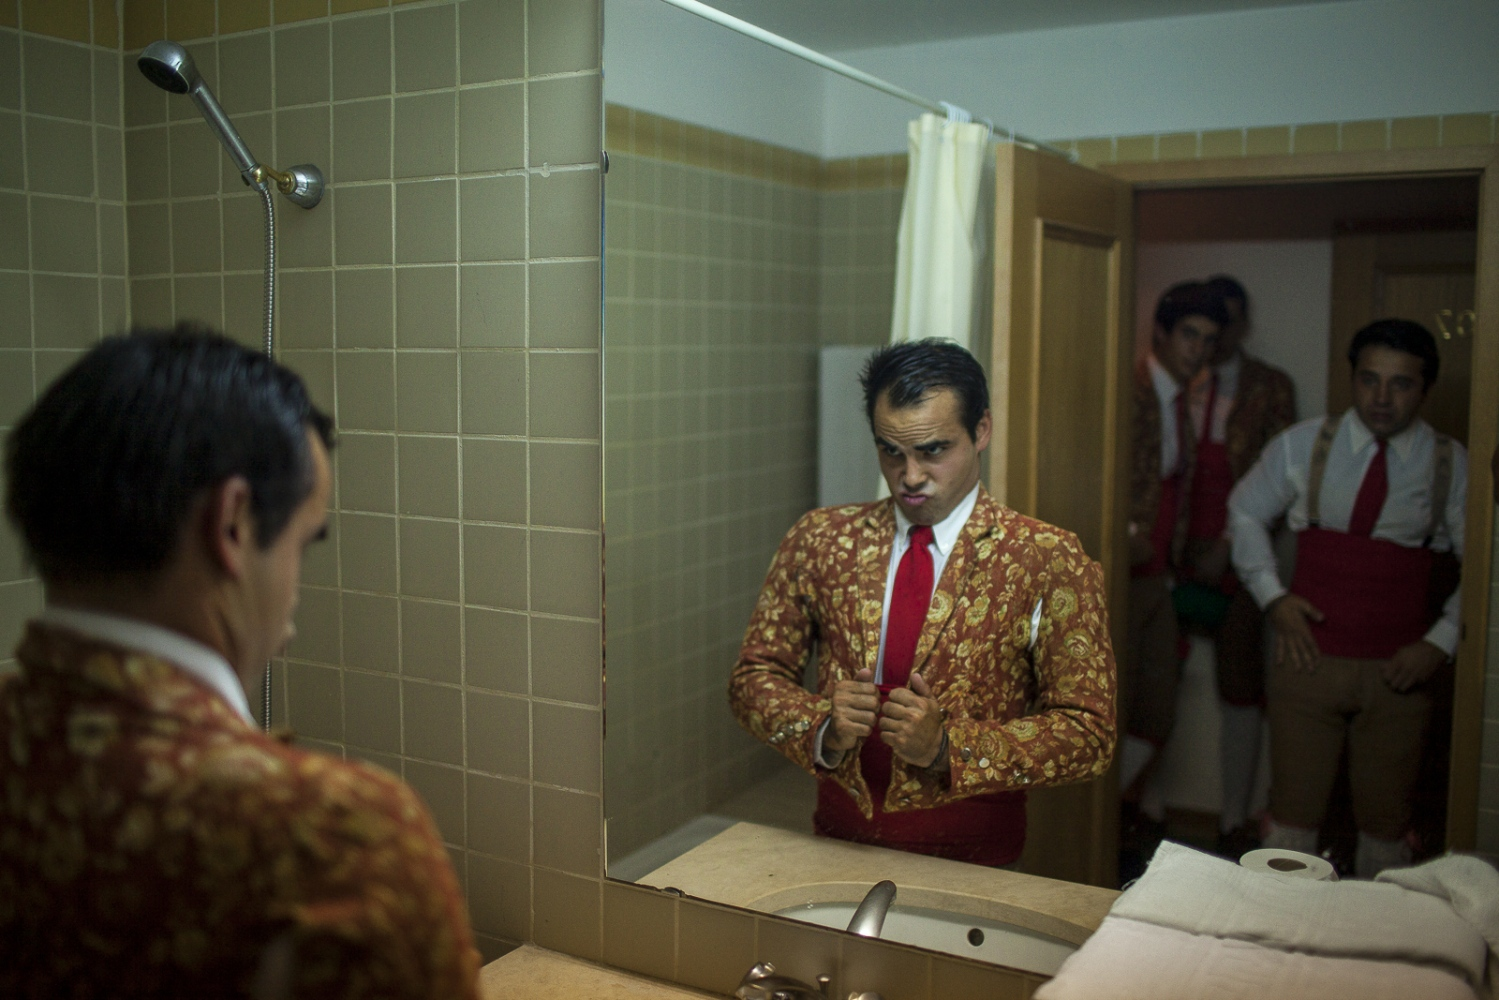 Ricardo Matxira gets ready for the bullfight in the hotel room.